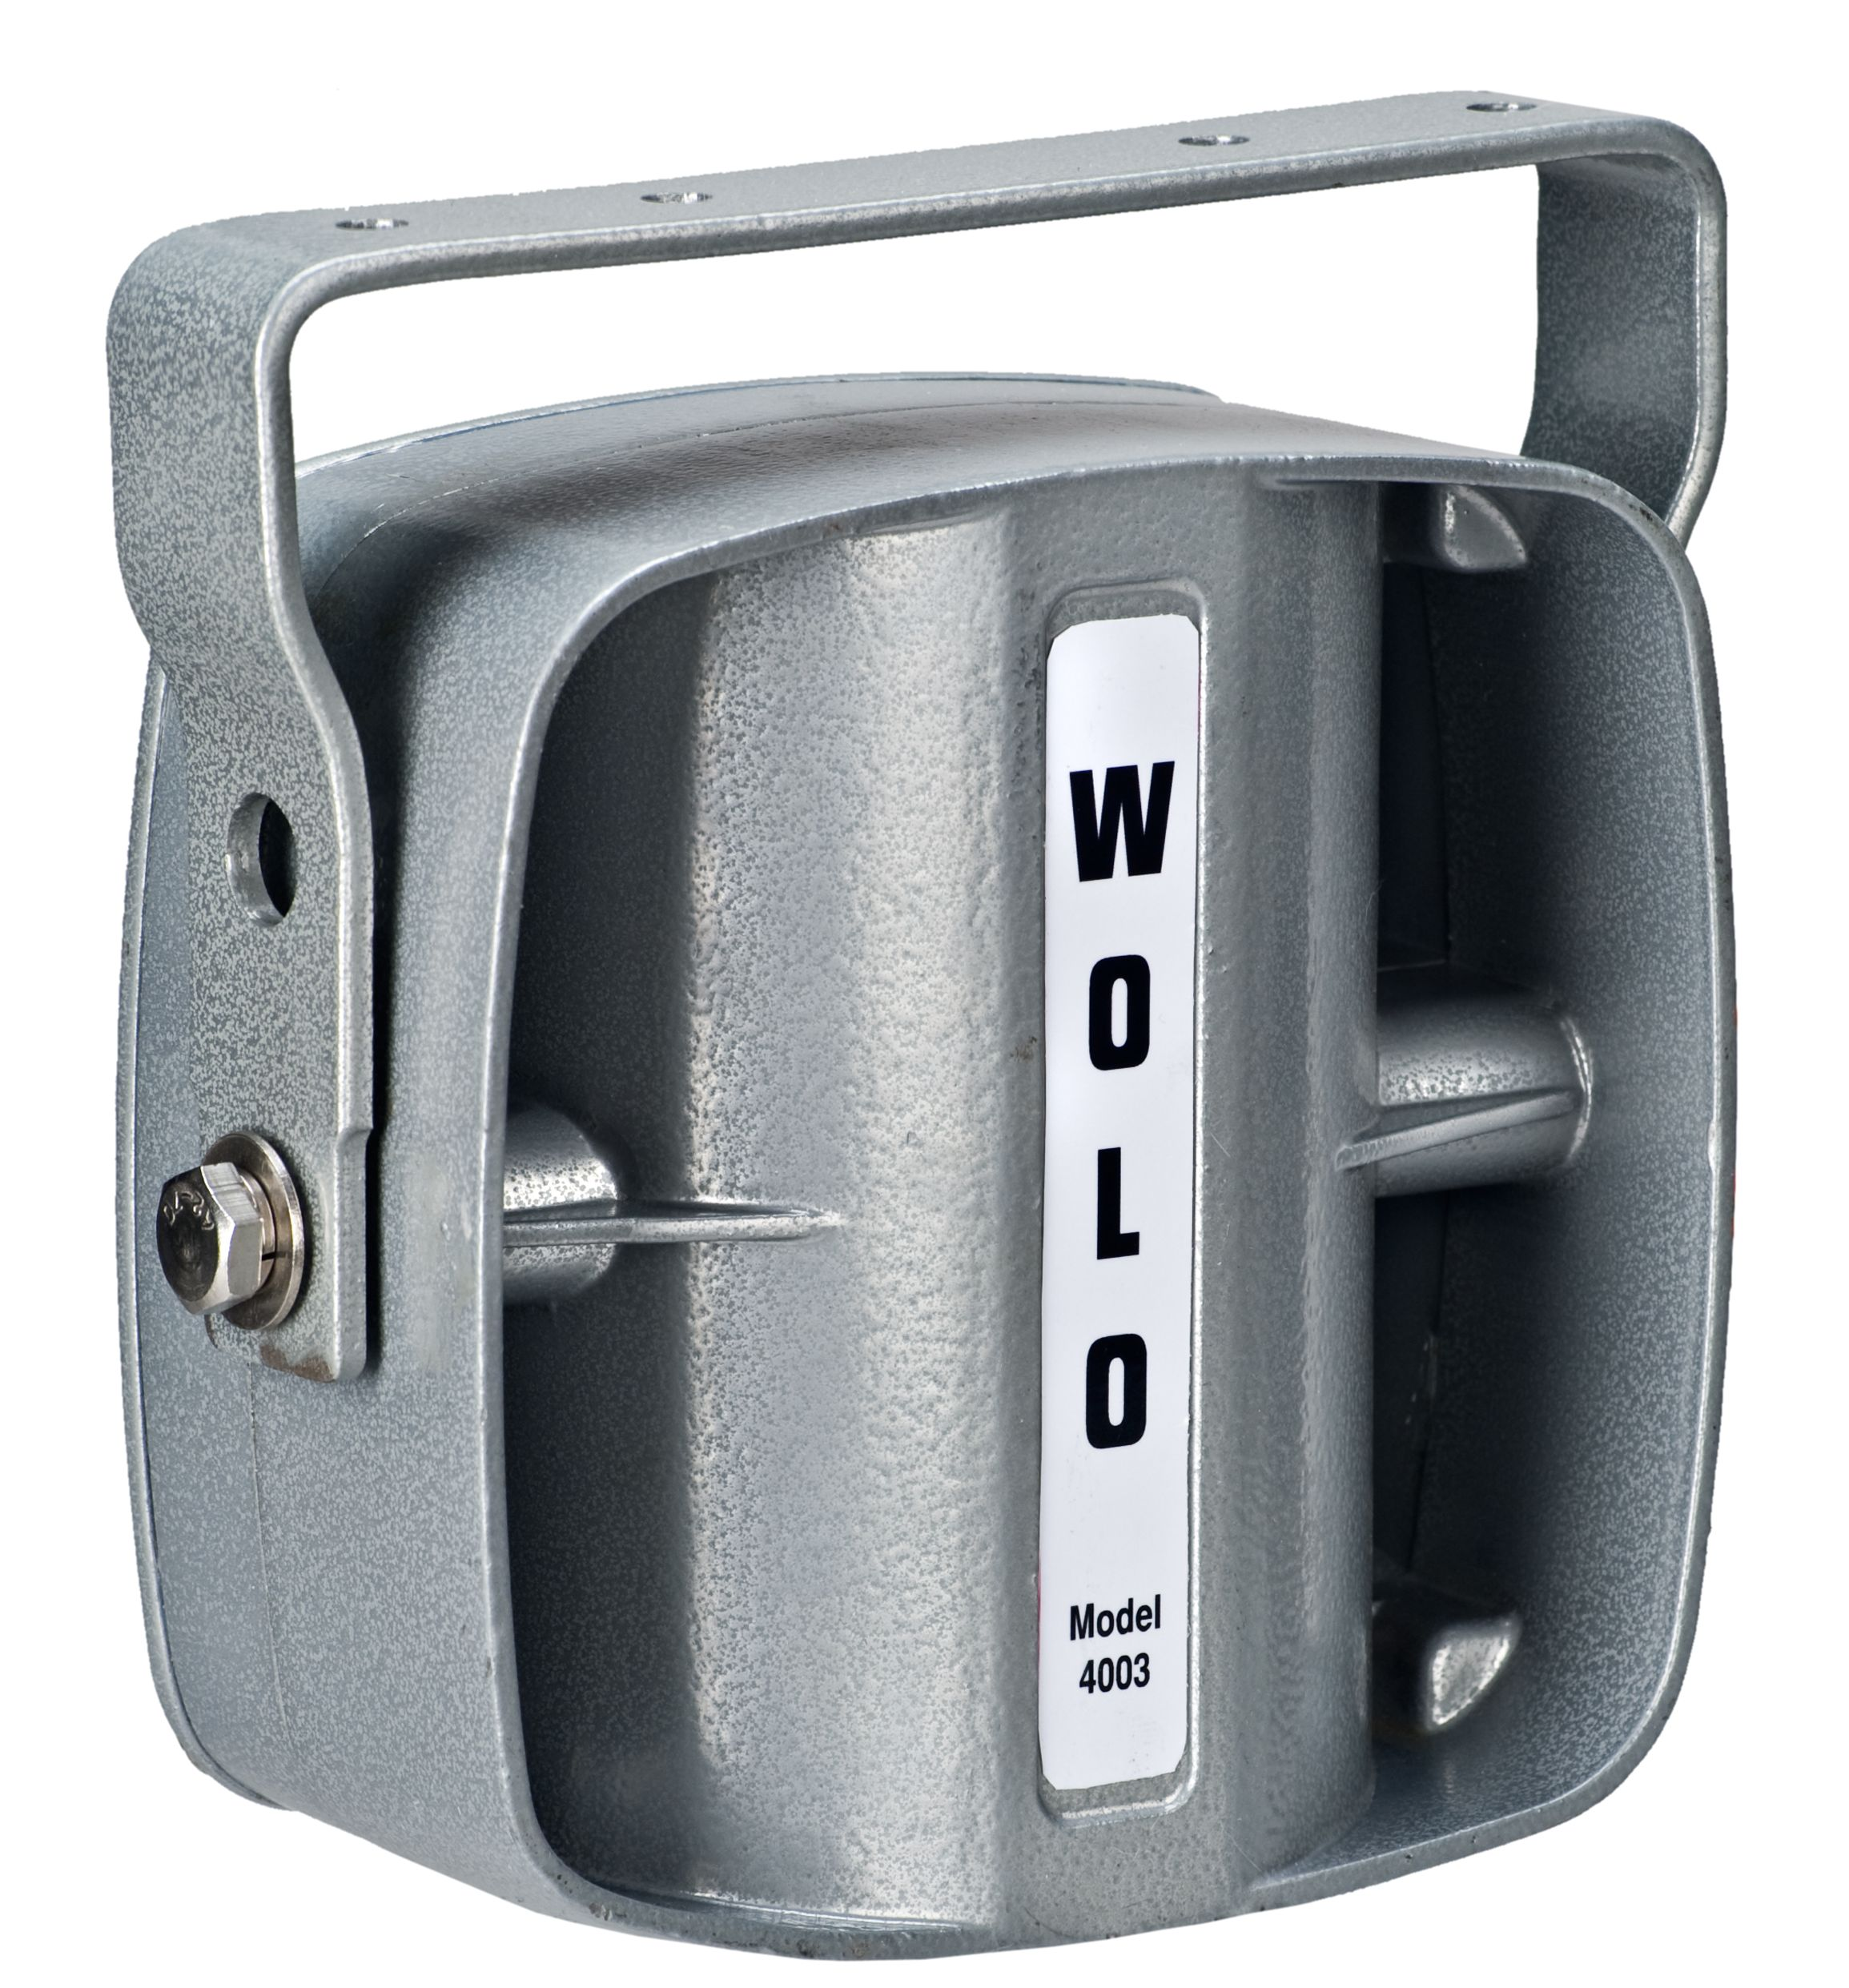 Wolo Mfg Corp Emergency Vehicle Sirens Electronic Horn Click To Enlarge Picture Of Model 4003